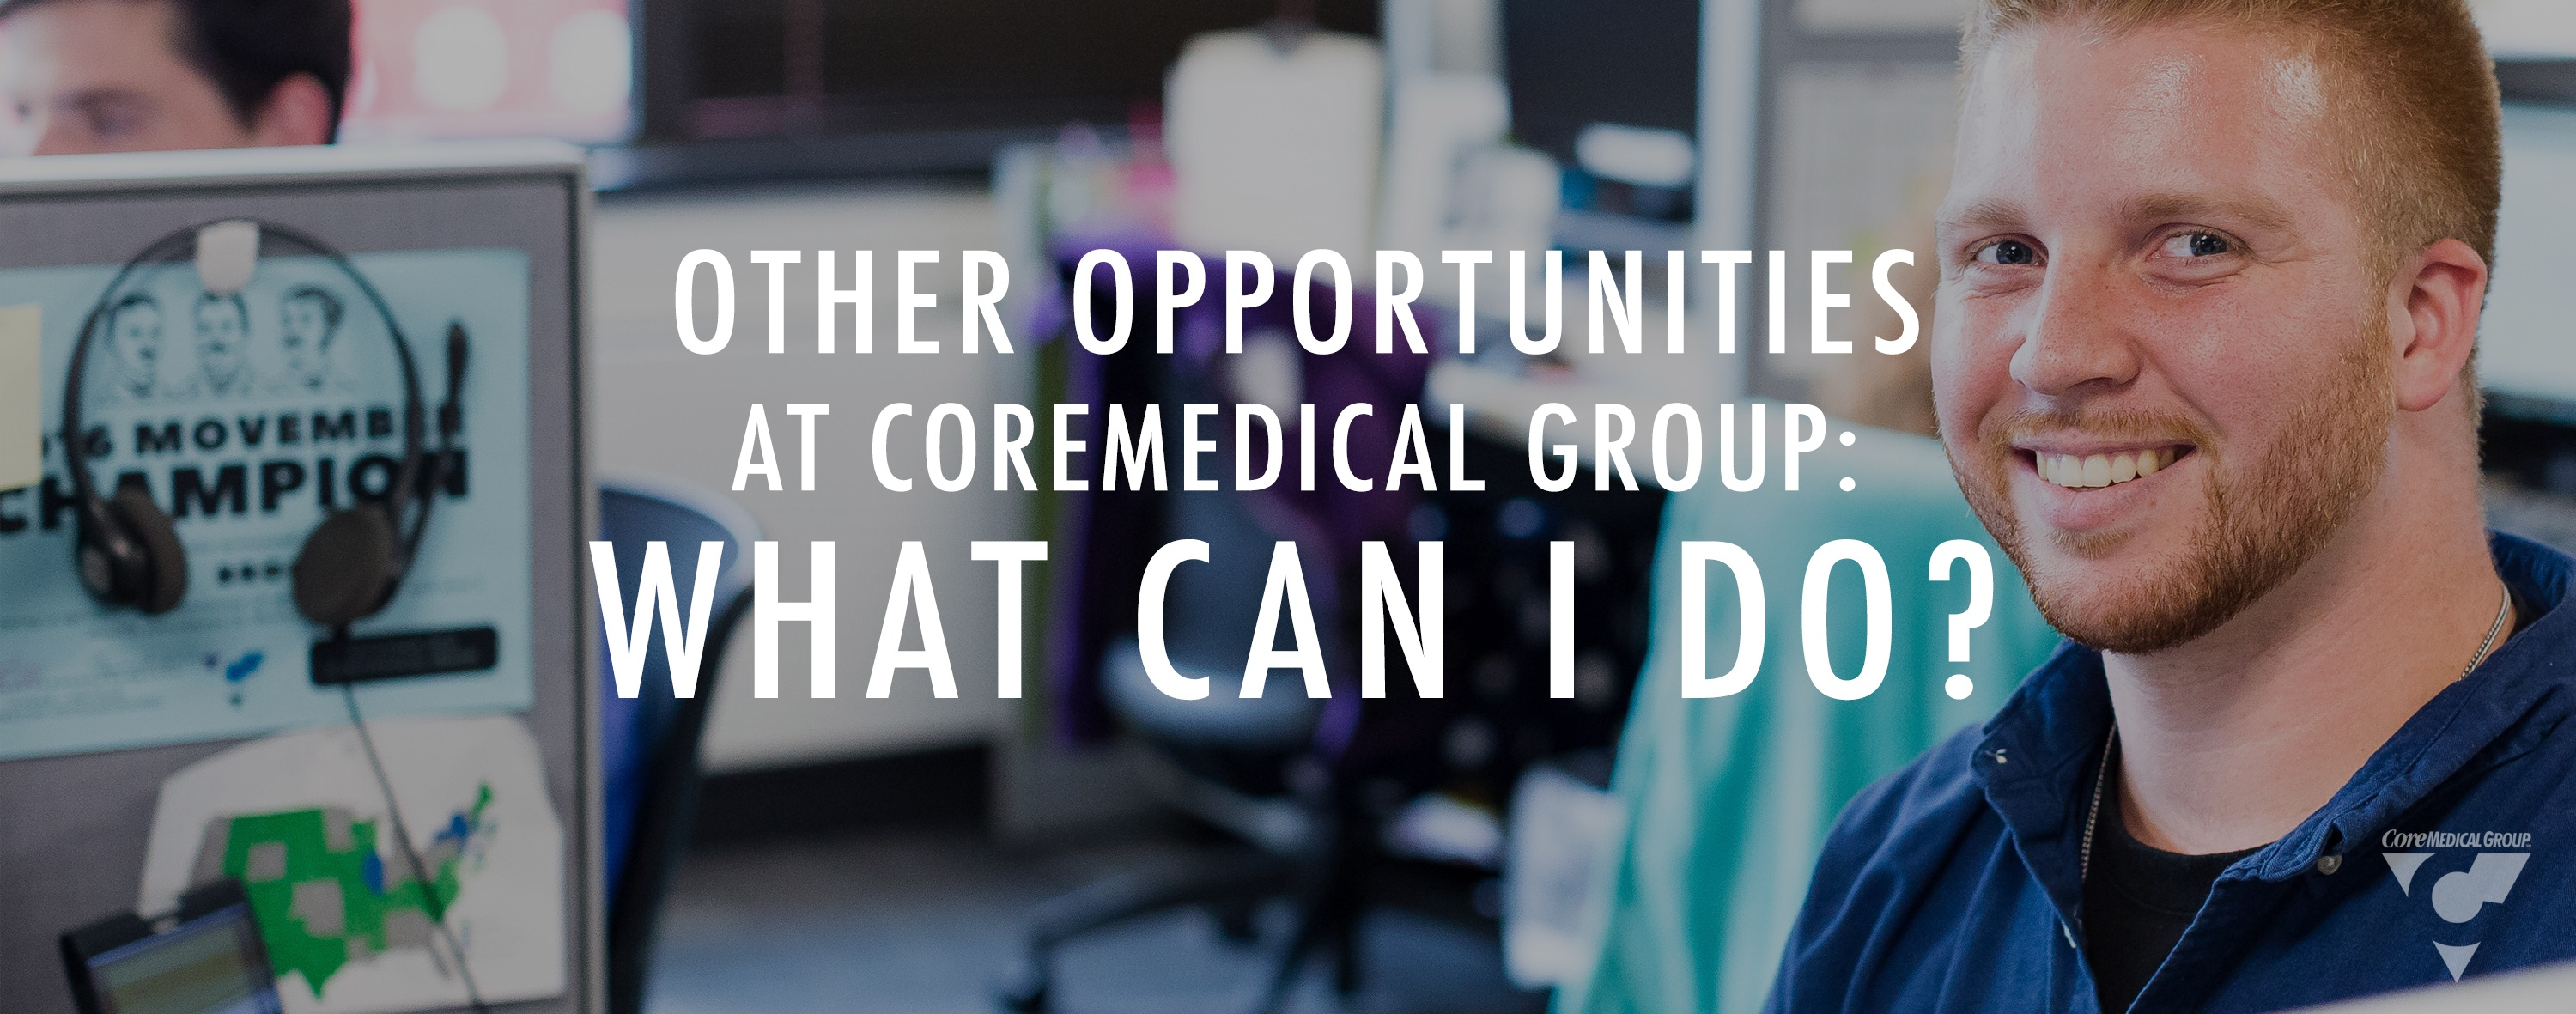 CMG_Blog_Featured Images_Other_Opportunties_at_Core_Medical_Group_Blog_R1.jpg